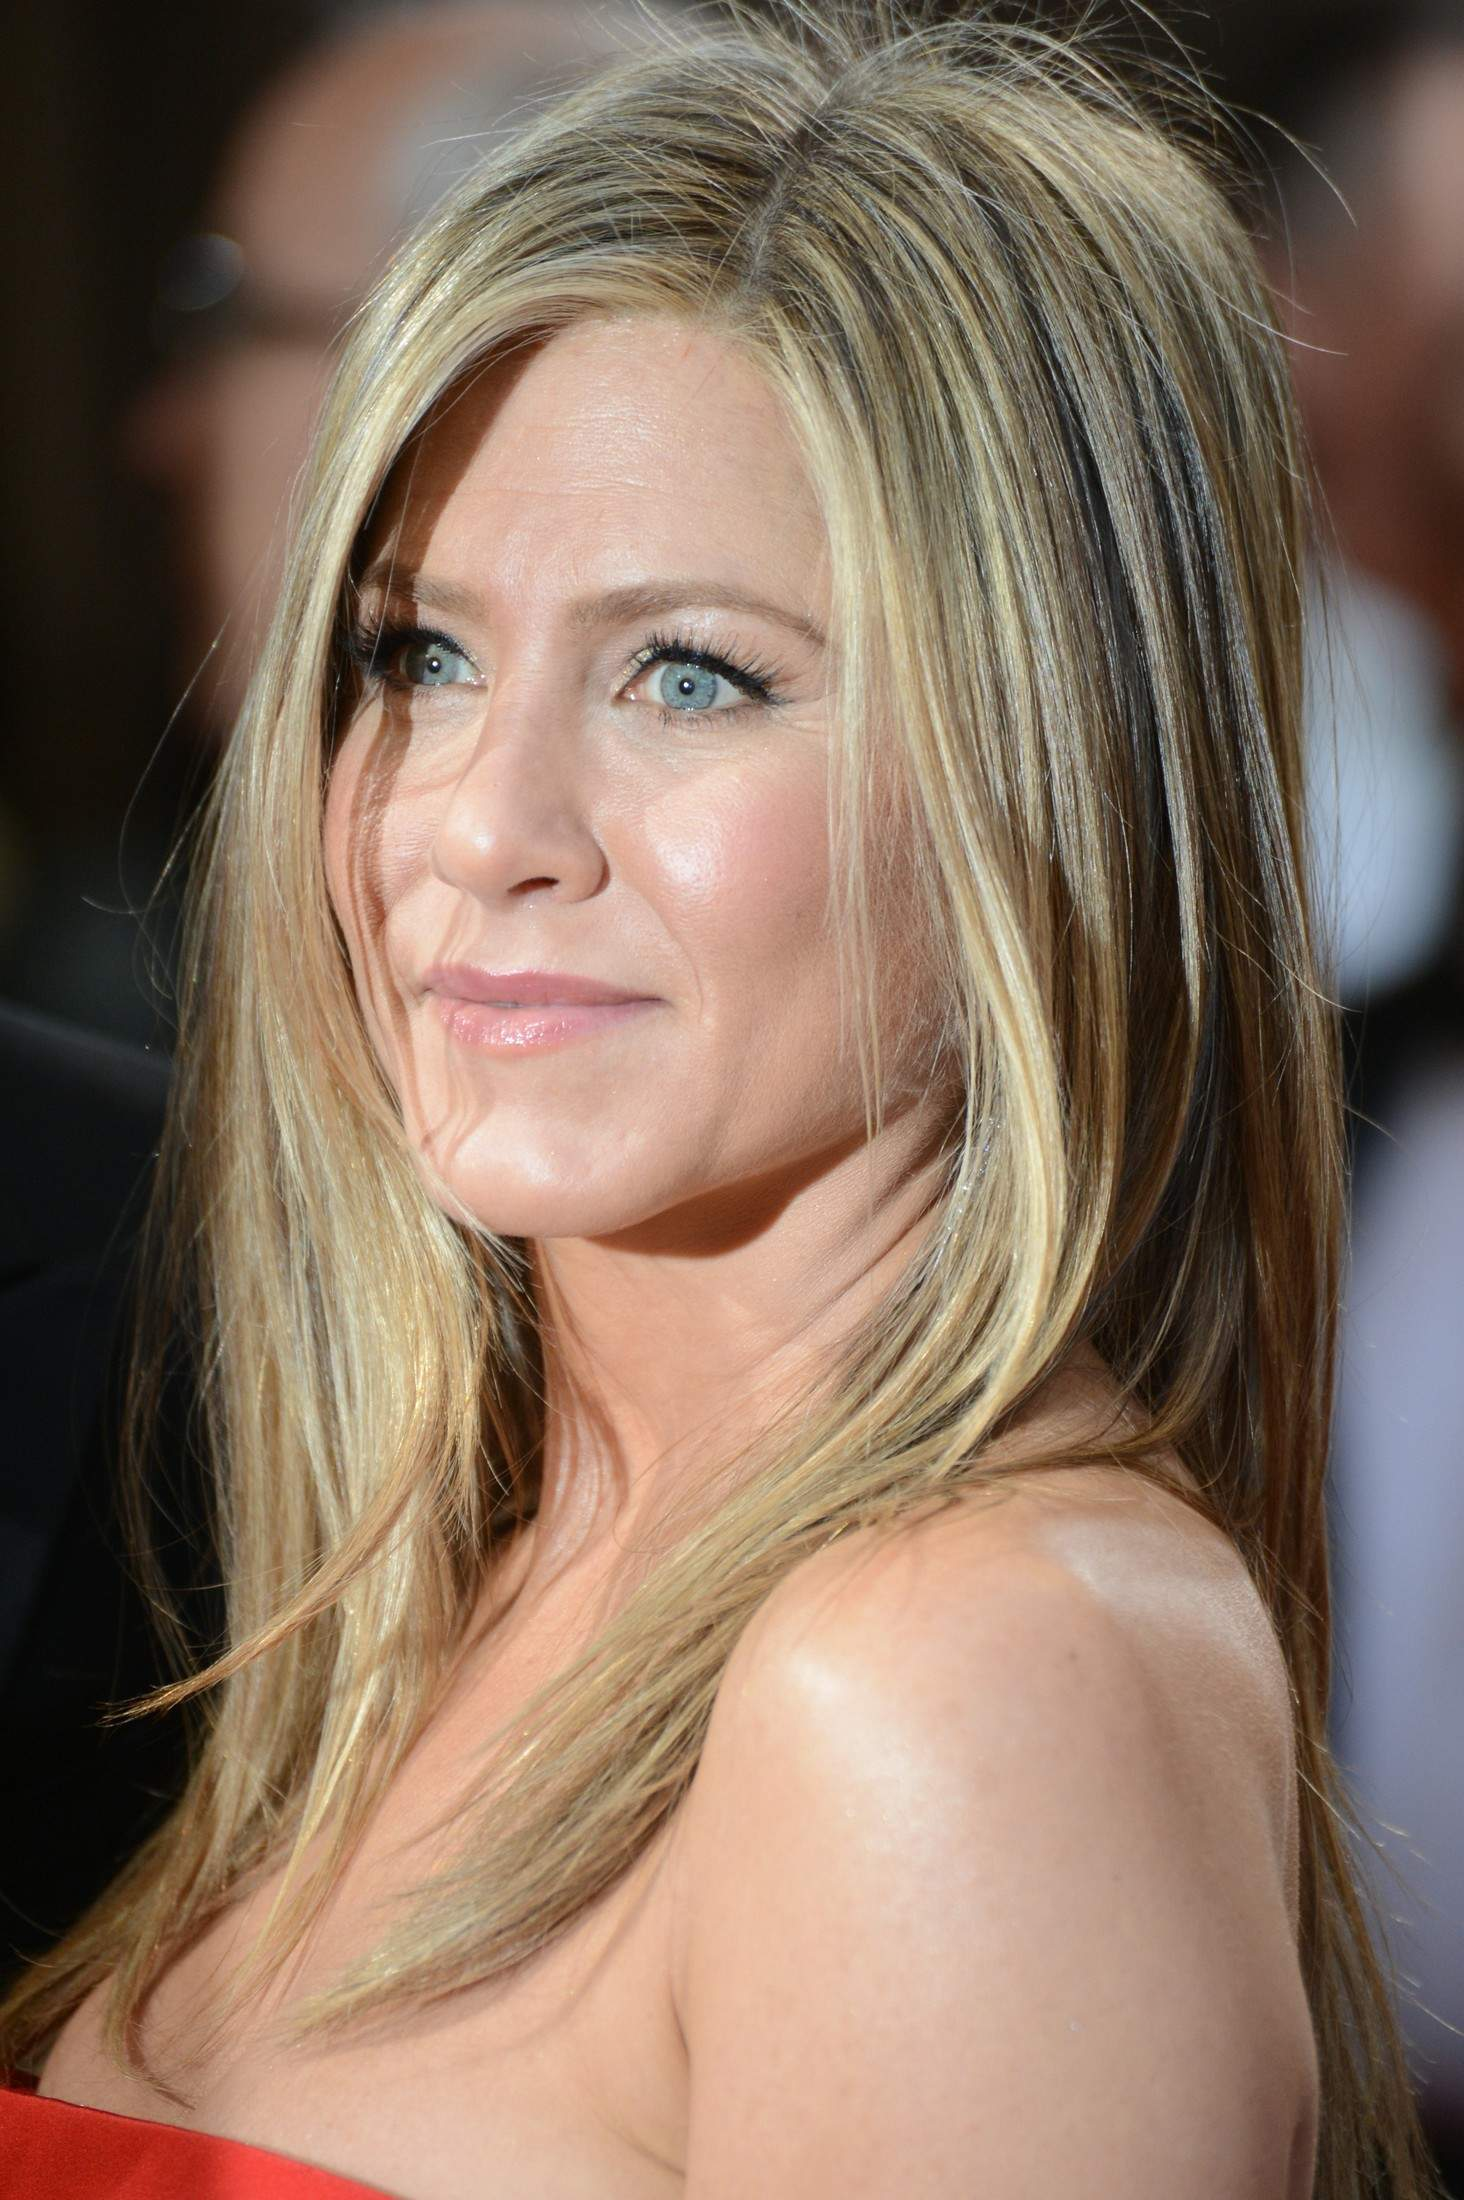 19 stages of Jennifer Aniston's famous hair throughout the ... |Jennifer Aniston Photography